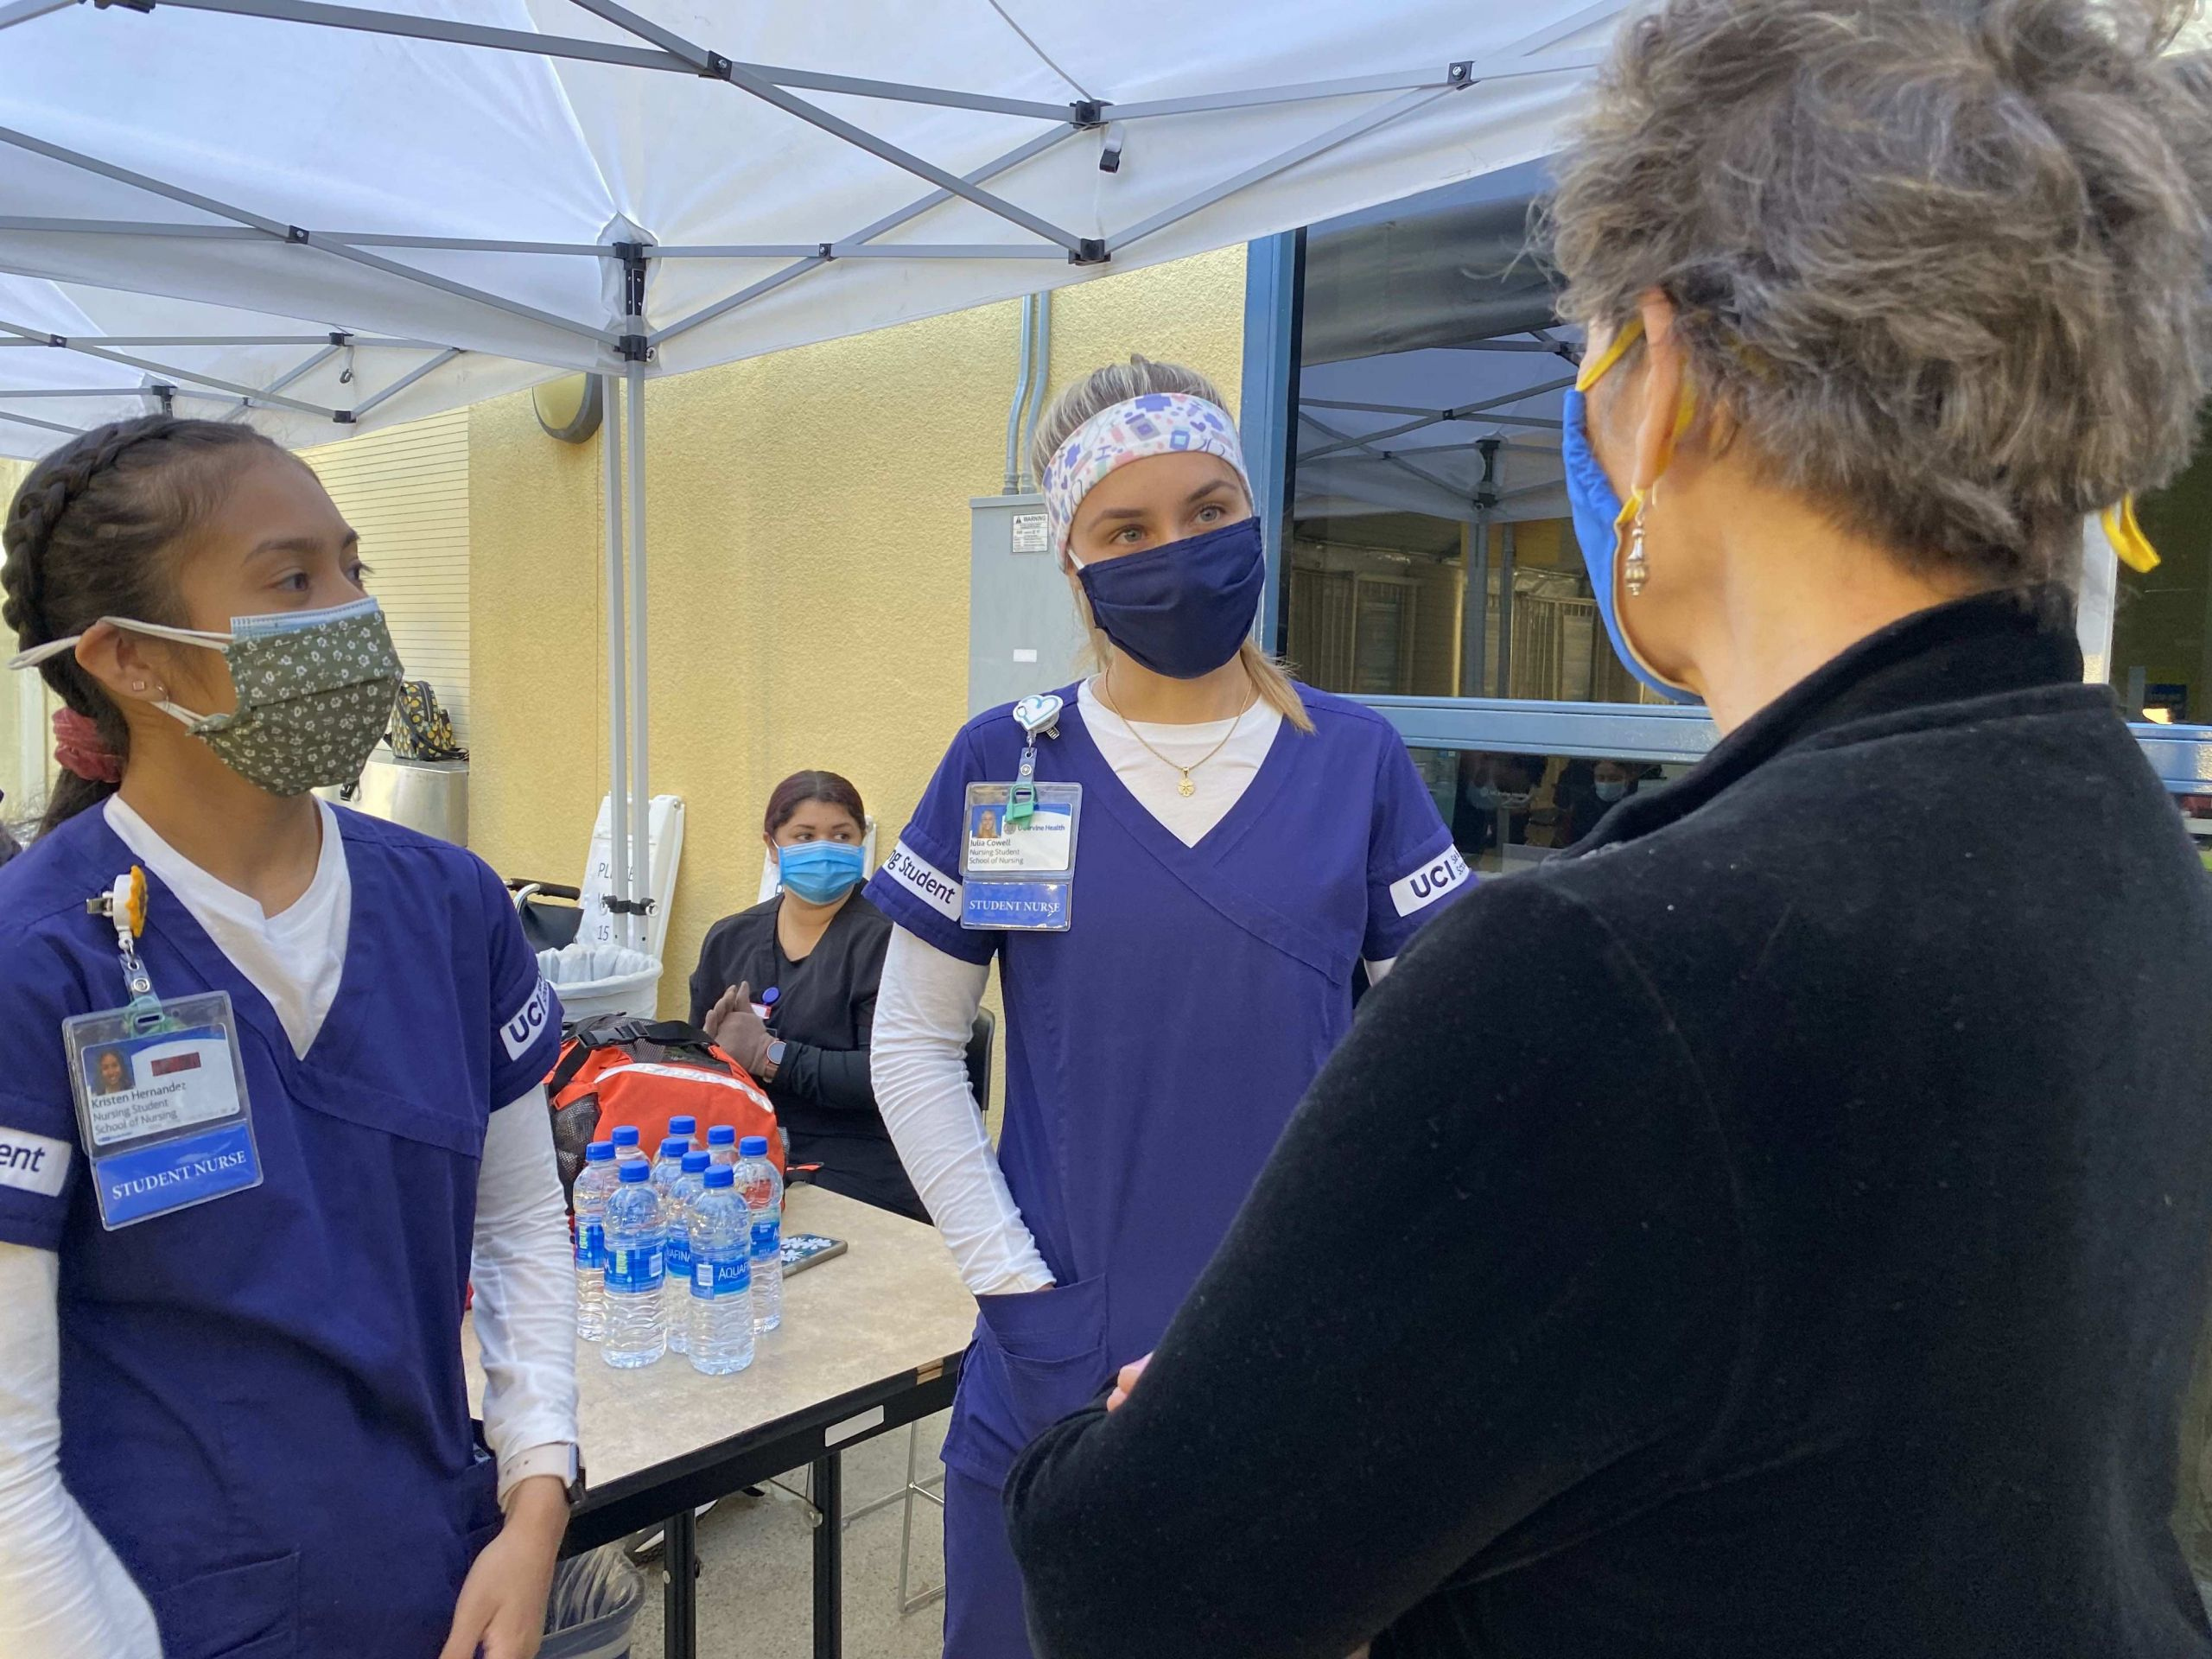 UCI School of Nursing Dean Adey Nyamathi talks to nursing students Julia Cowell (right) and Kristen Hernandez at the vaccination drive at the Bren Center.